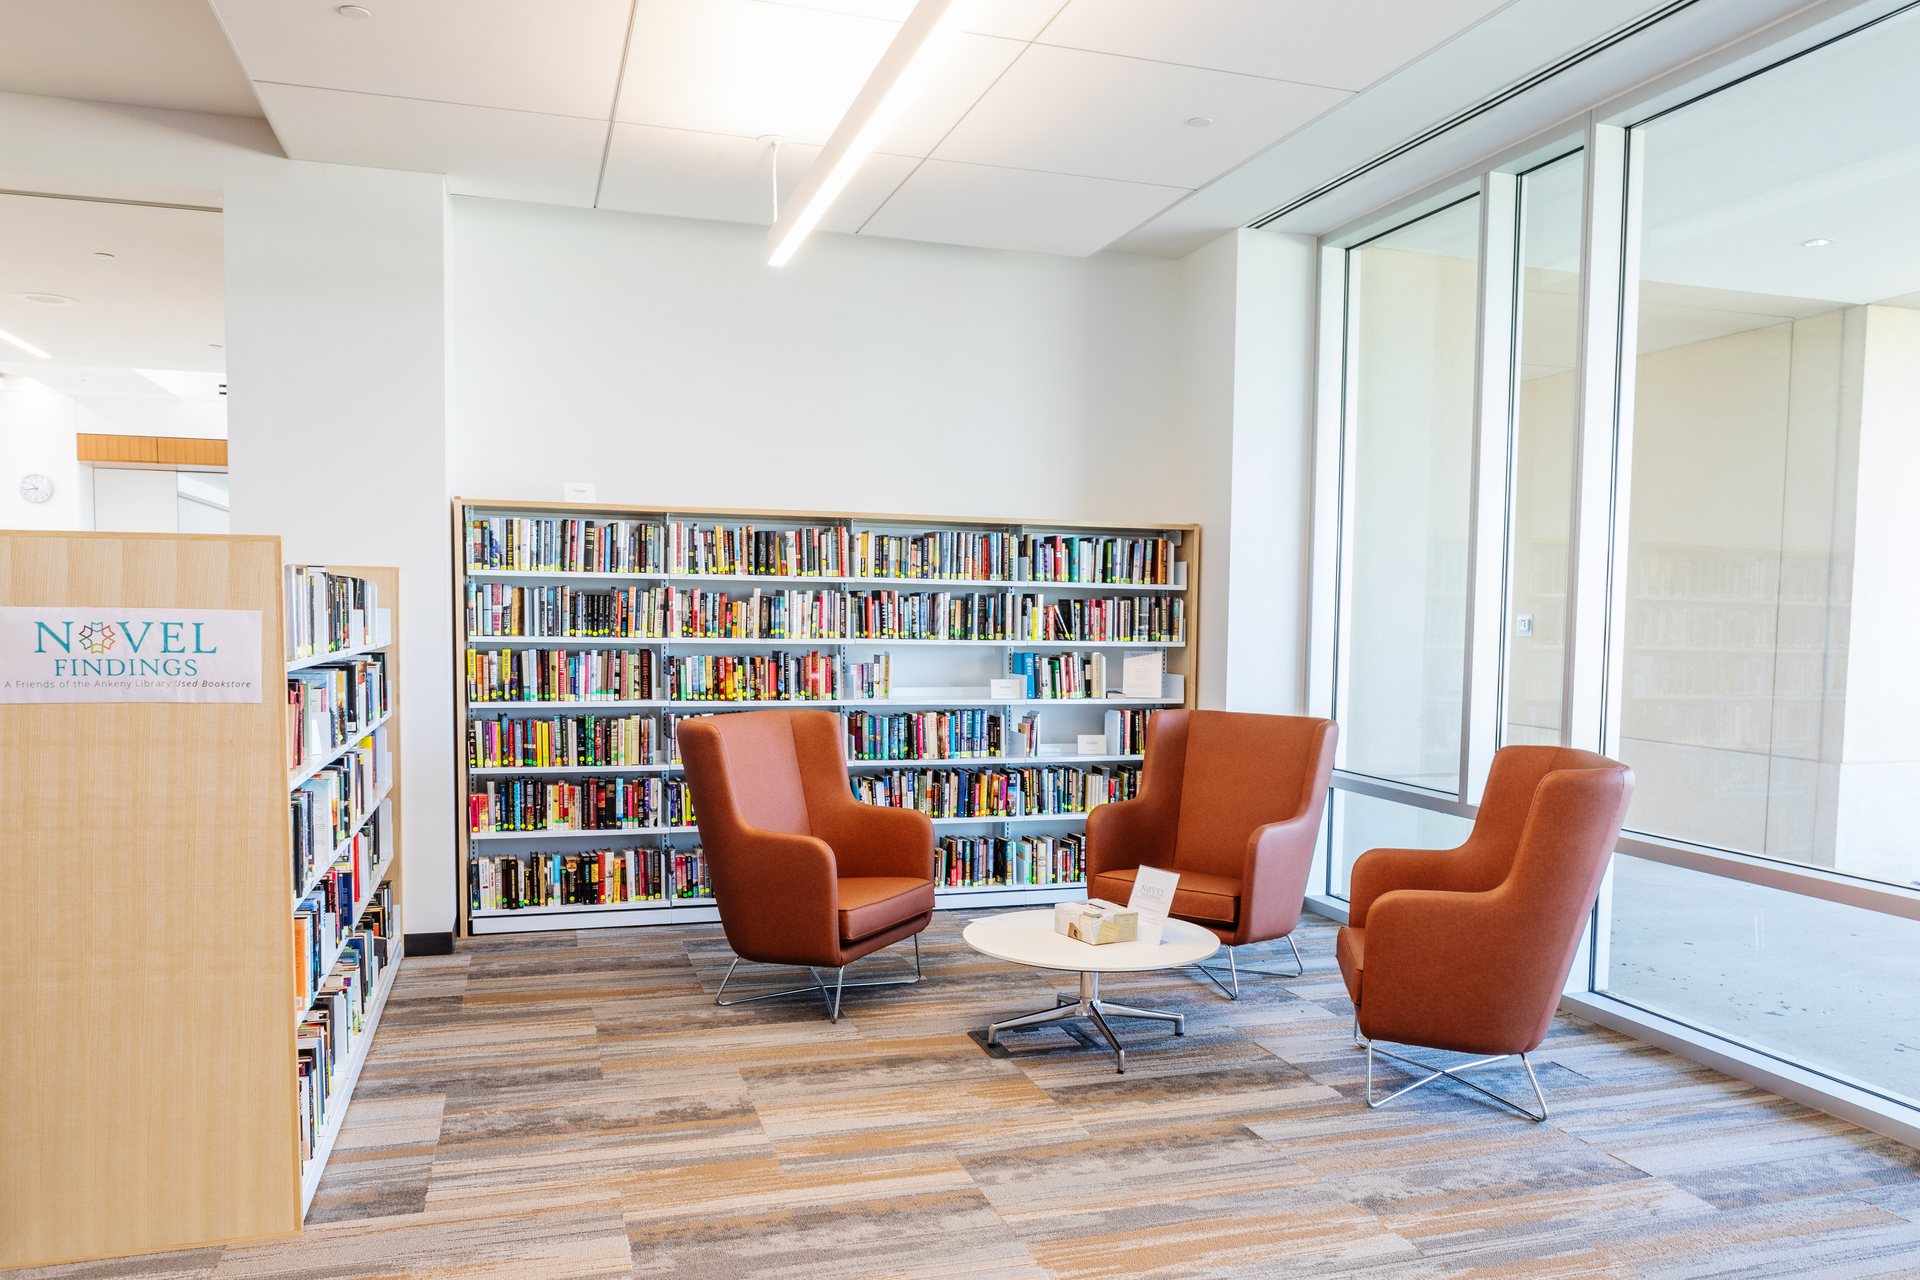 Stahl Construction Ankeny Kirkendall Public Library Interior Open Reading Area